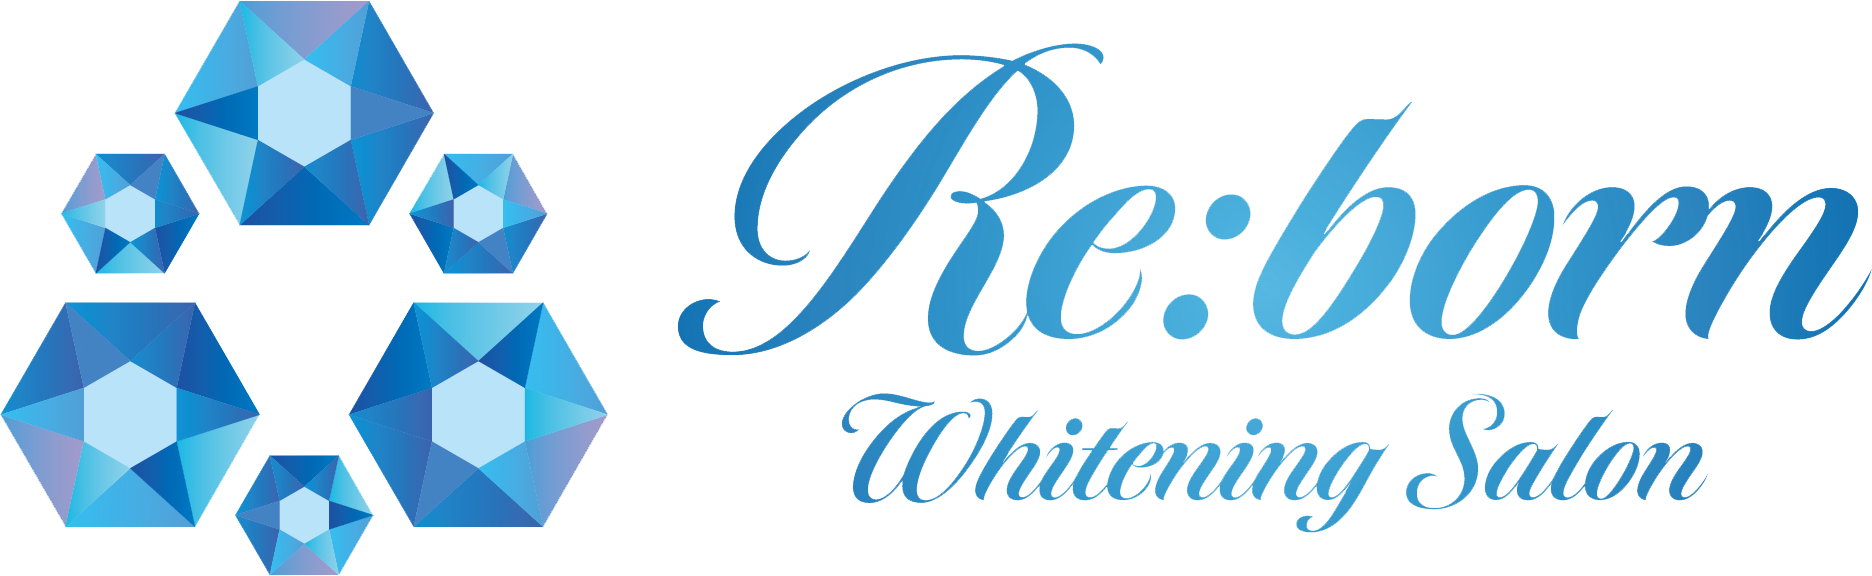 Whitening Salon Re:born